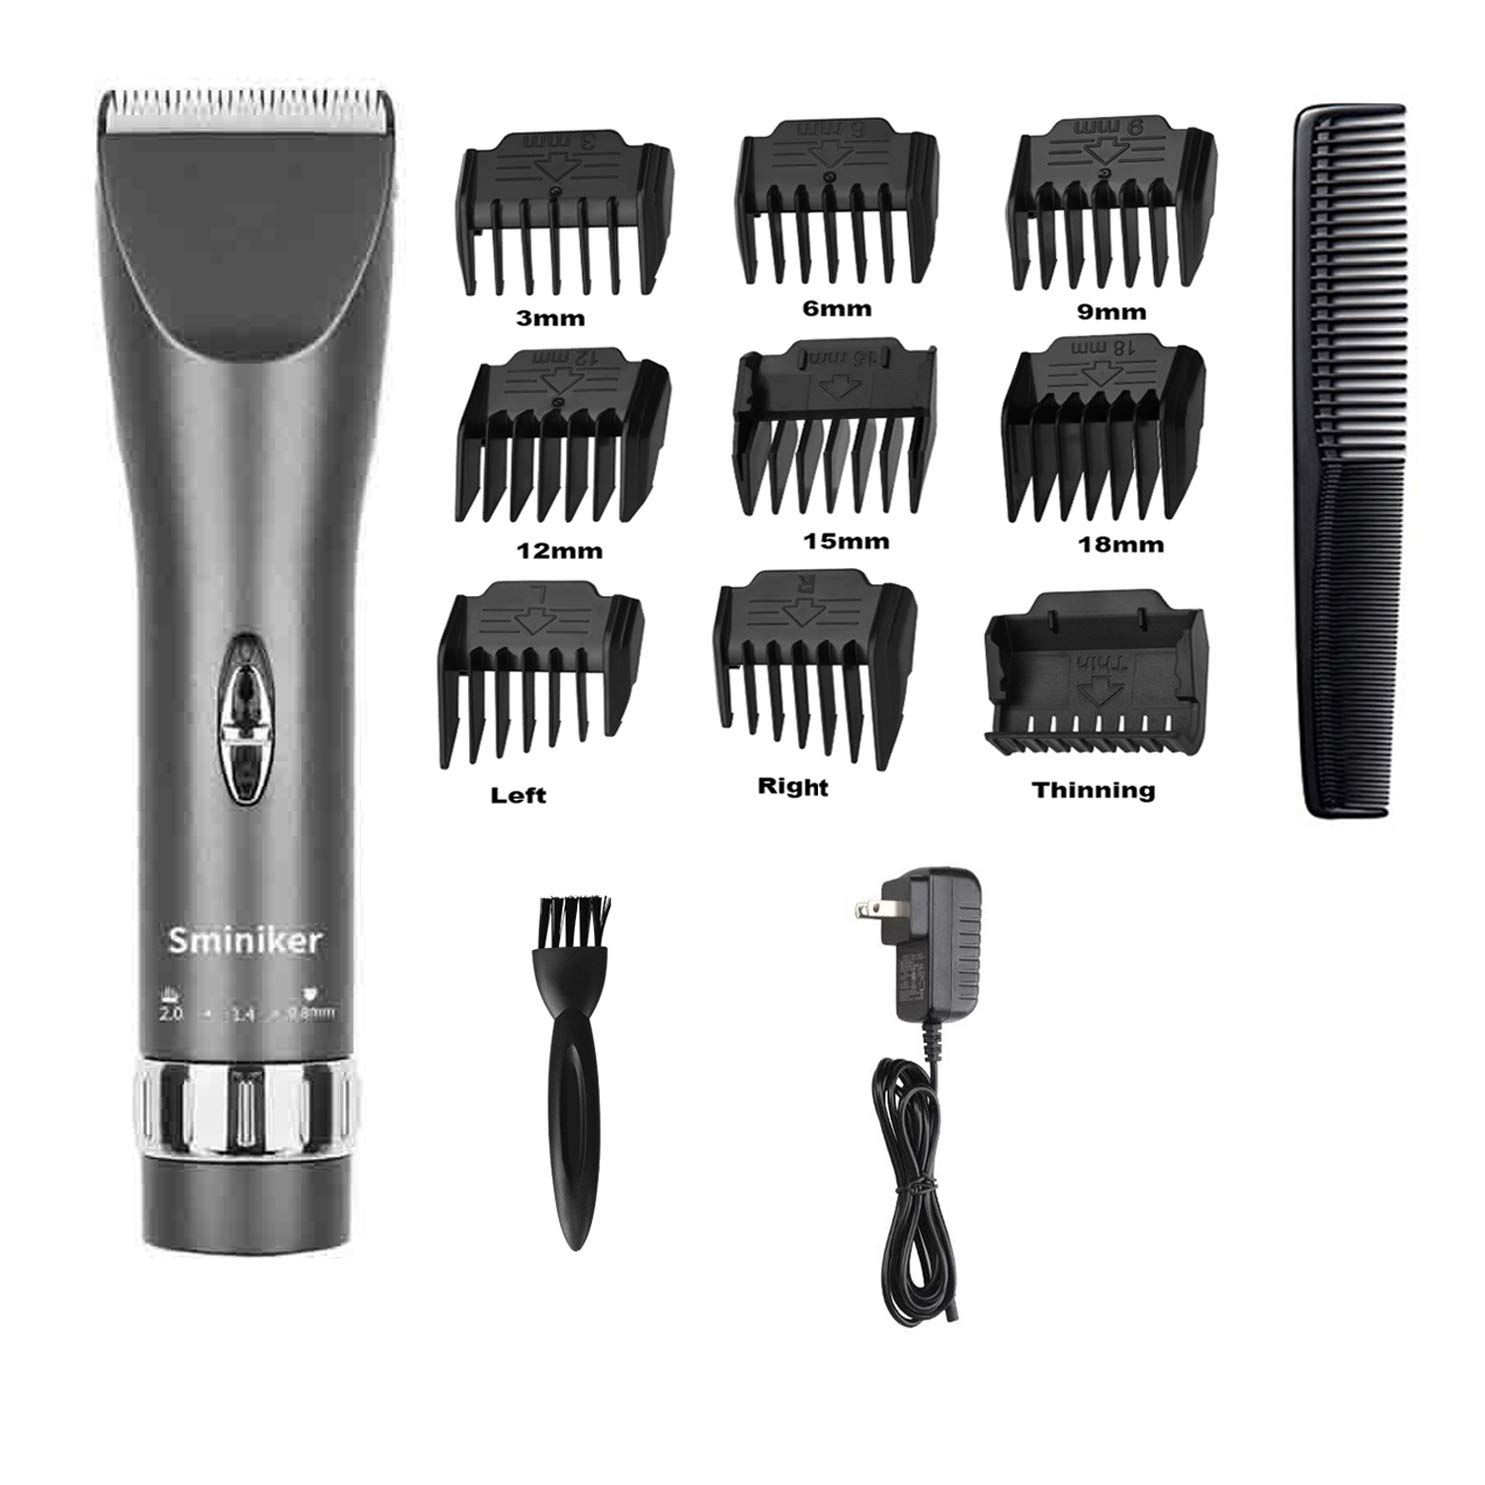 Sminiker Professional Cordless Rechargeable Hair Clippers